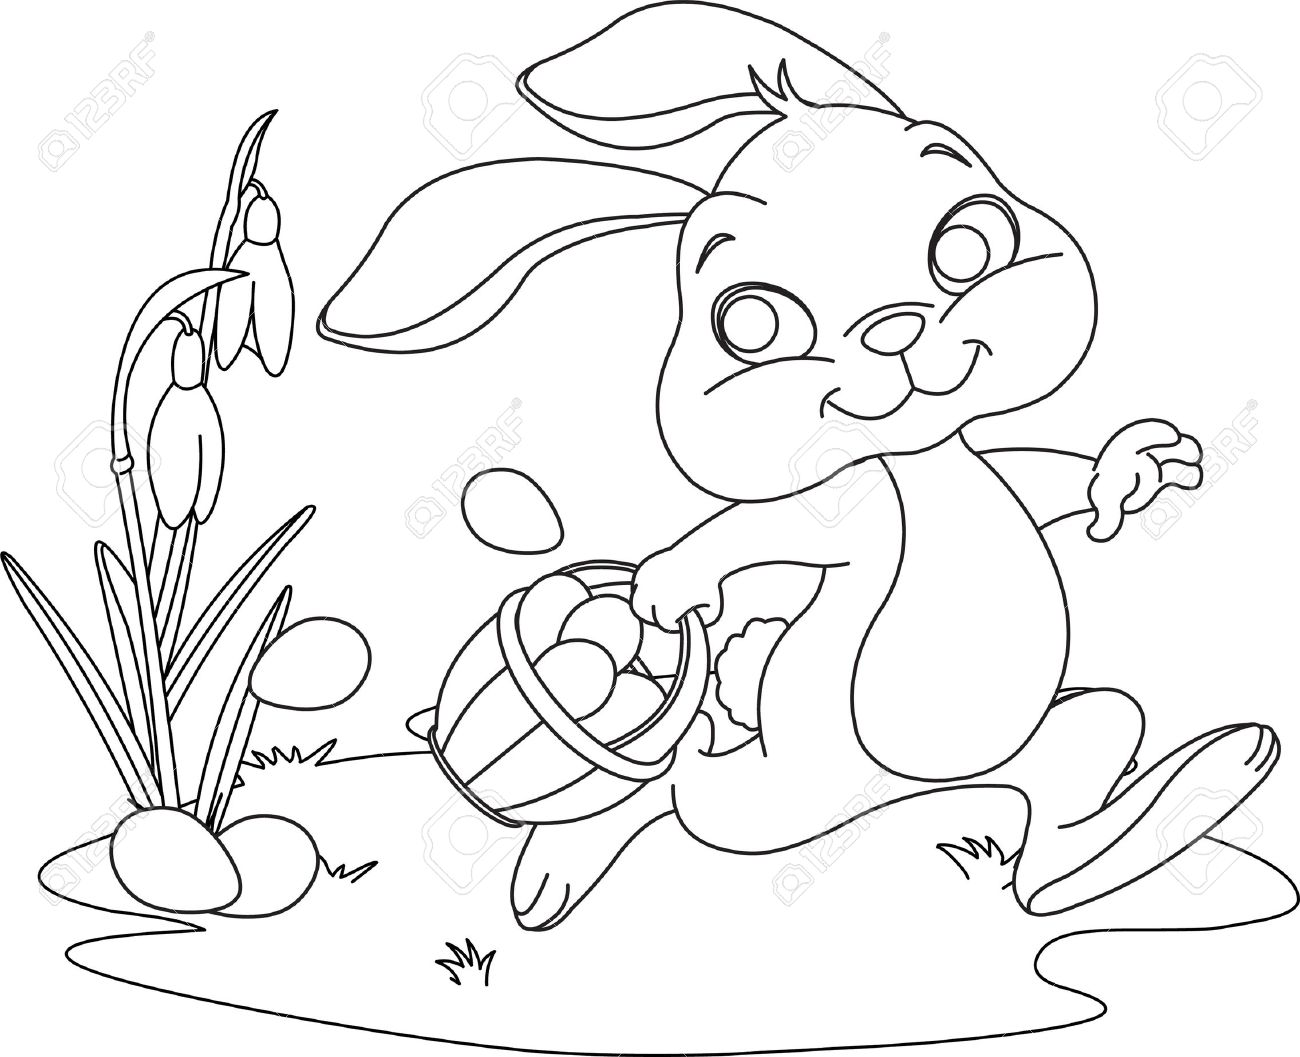 Cute Easter Bunny Hiding Eggs. Coloring Page Royalty Free Cliparts ...